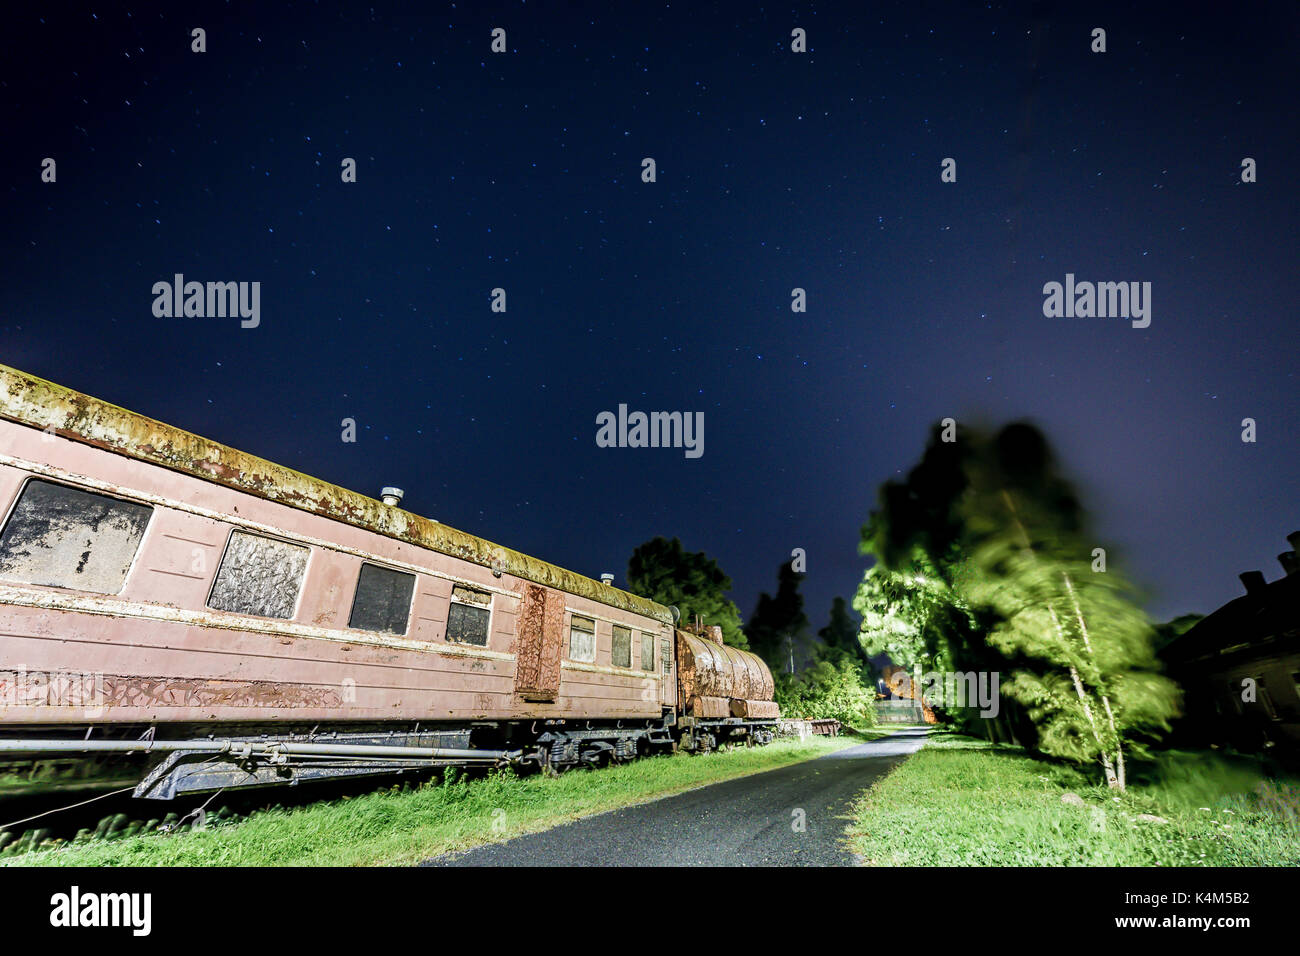 Rusty old train car with some stars in the skyw - Stock Image